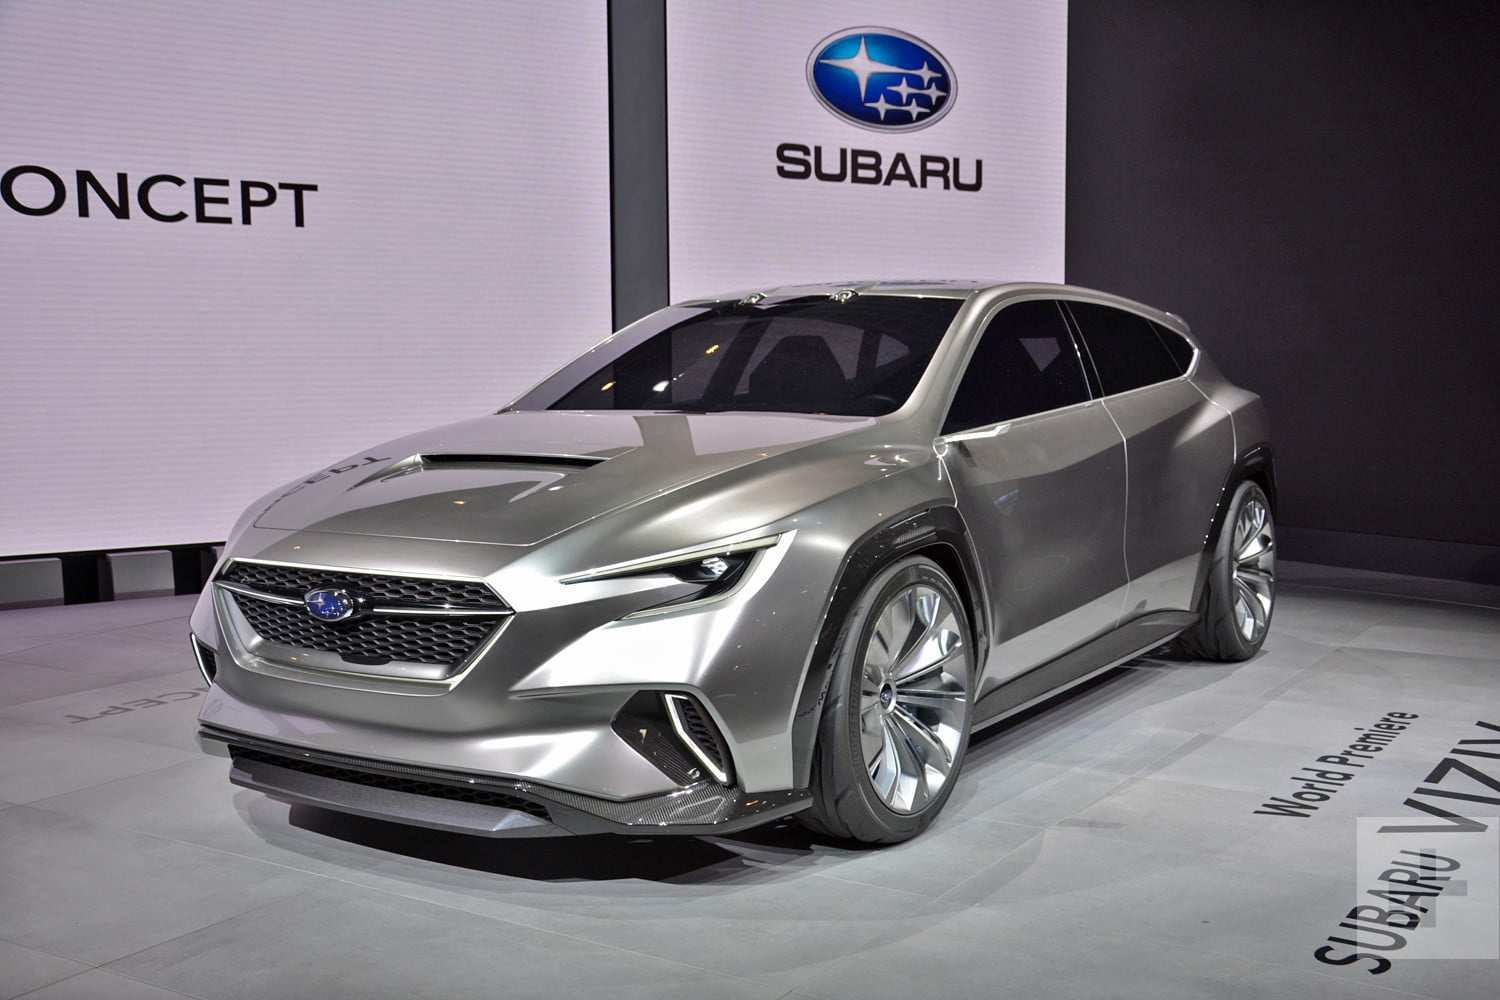 44 Best Review Subaru Plans For 2019 Concept Redesign And Review Specs and Review for Subaru Plans For 2019 Concept Redesign And Review